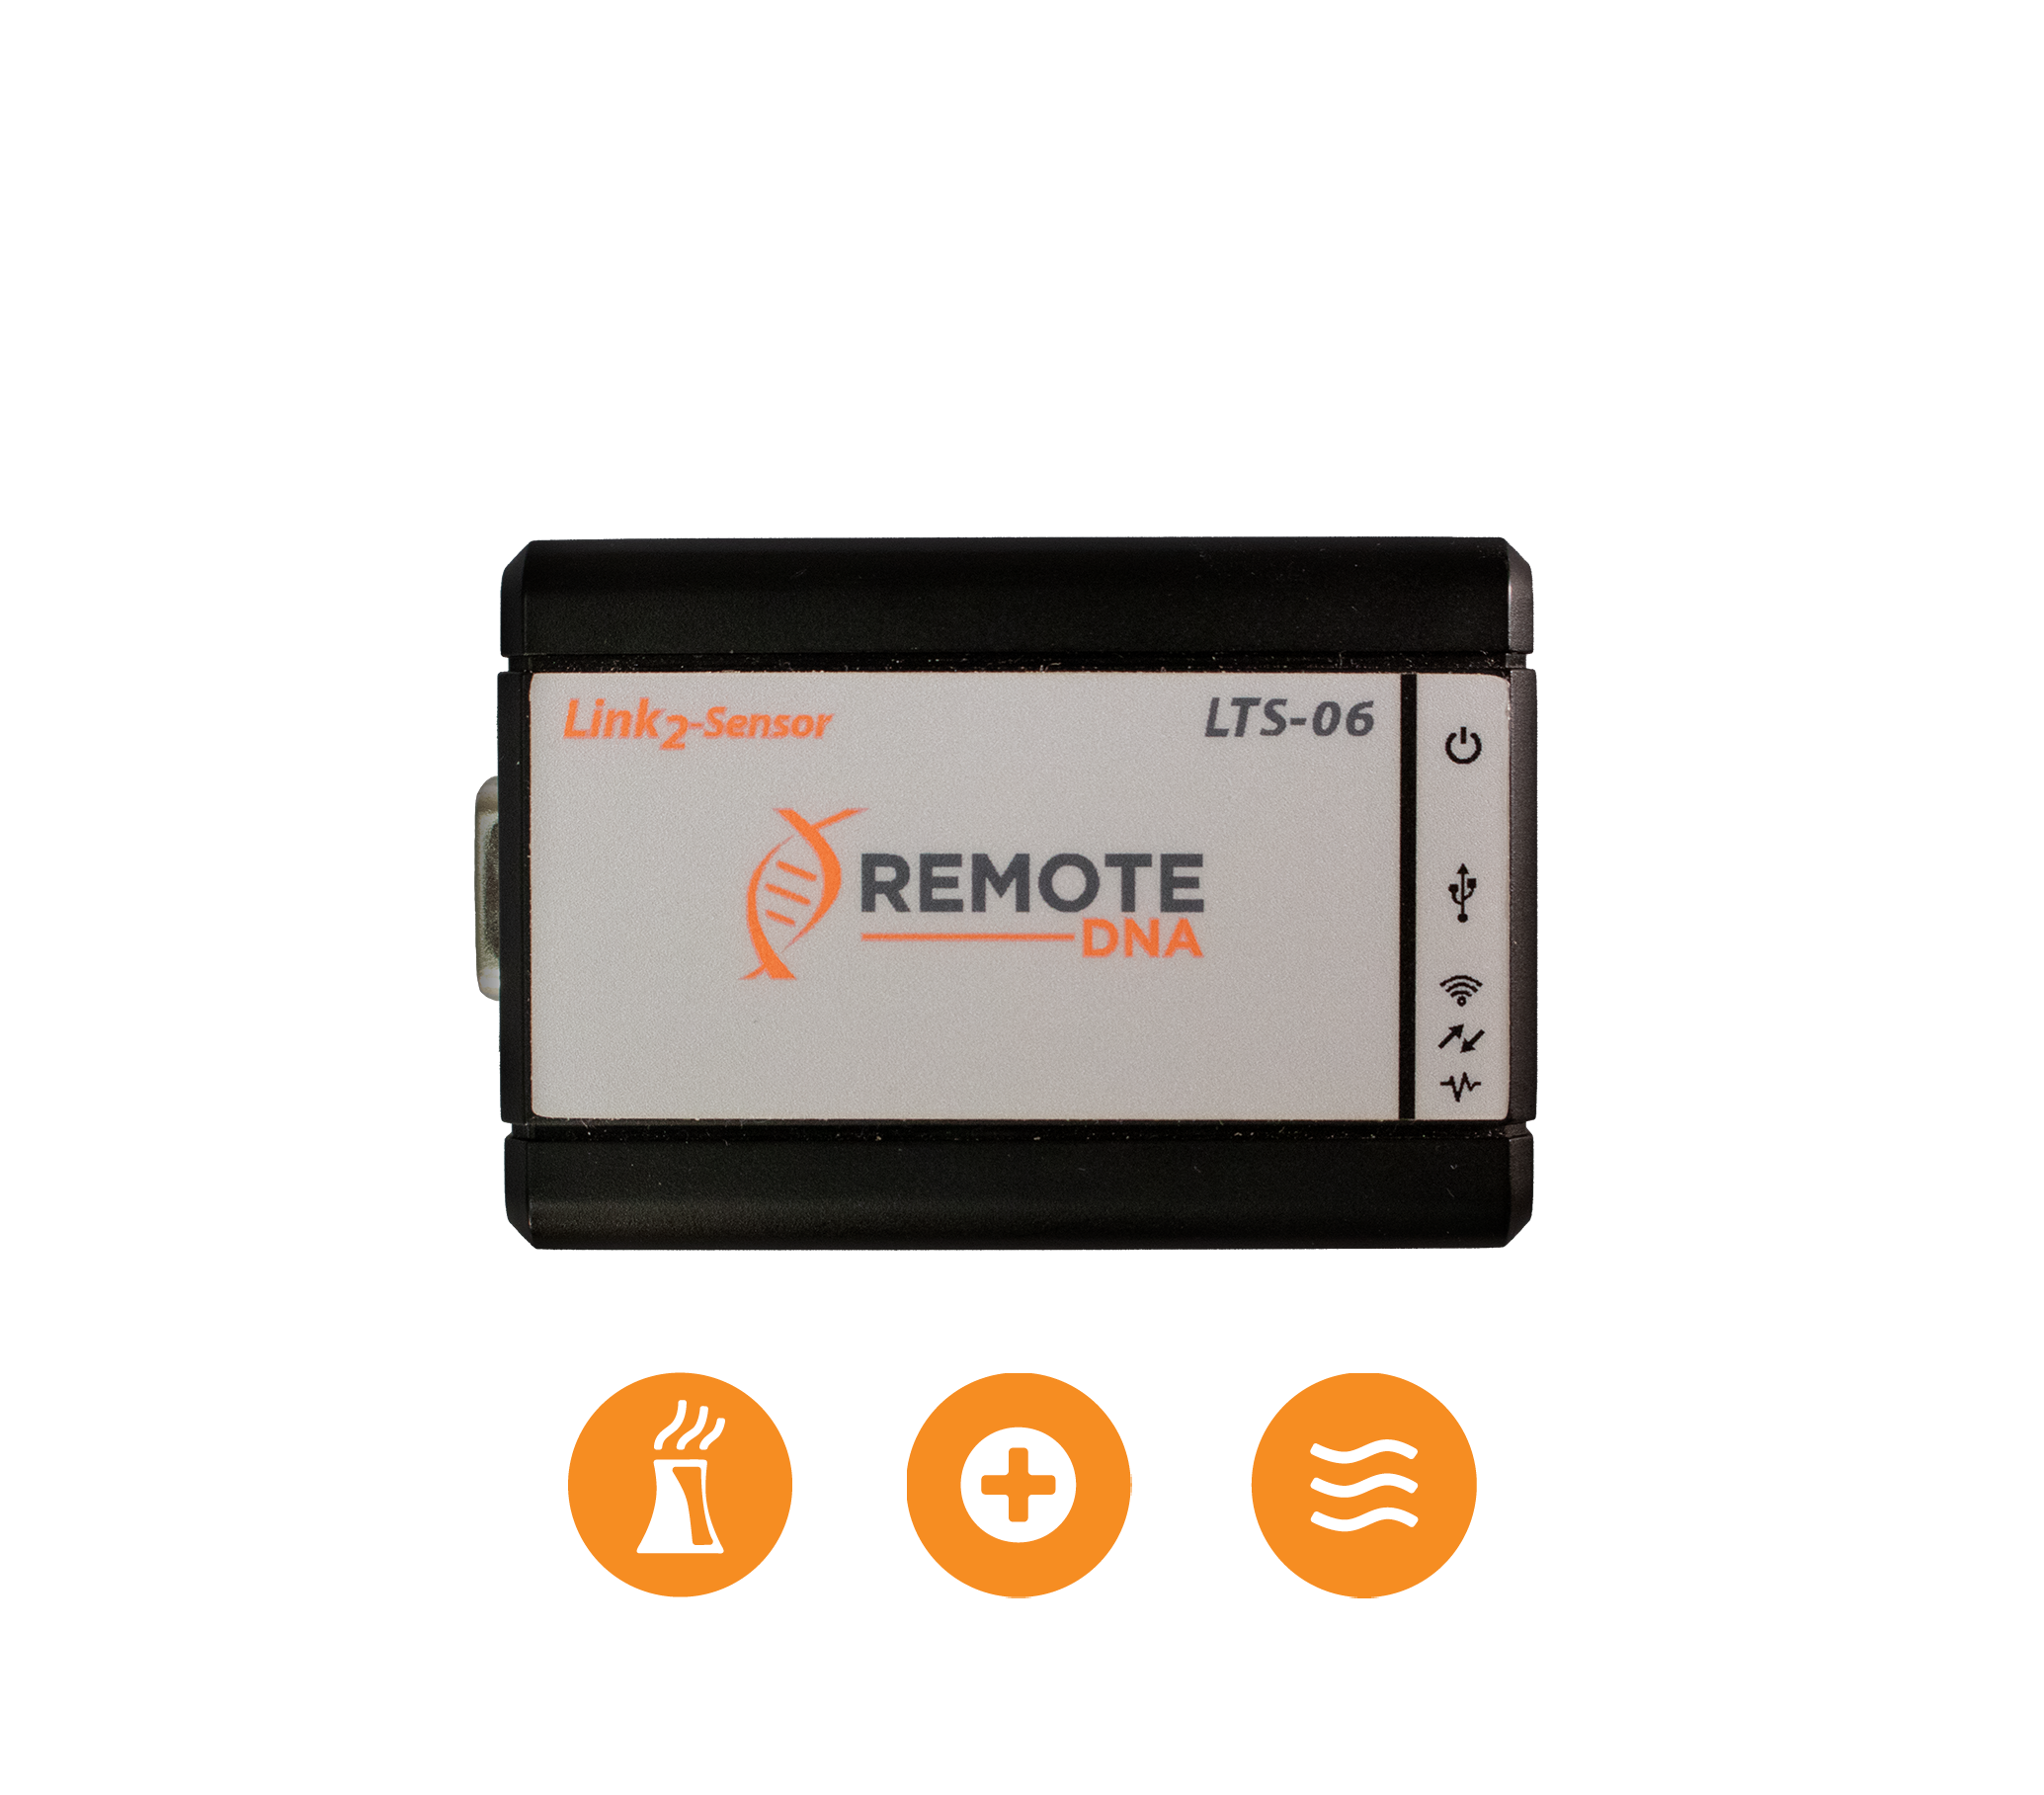 LTS-06 - The Link2 Sensor LTS-06 is a highly versatile radio transceiver in a small form factor providing great portability and compact installation. The LTS-06 can relay data from remote field teams using the integrated CNET mesh and Bluetooth LE radios…